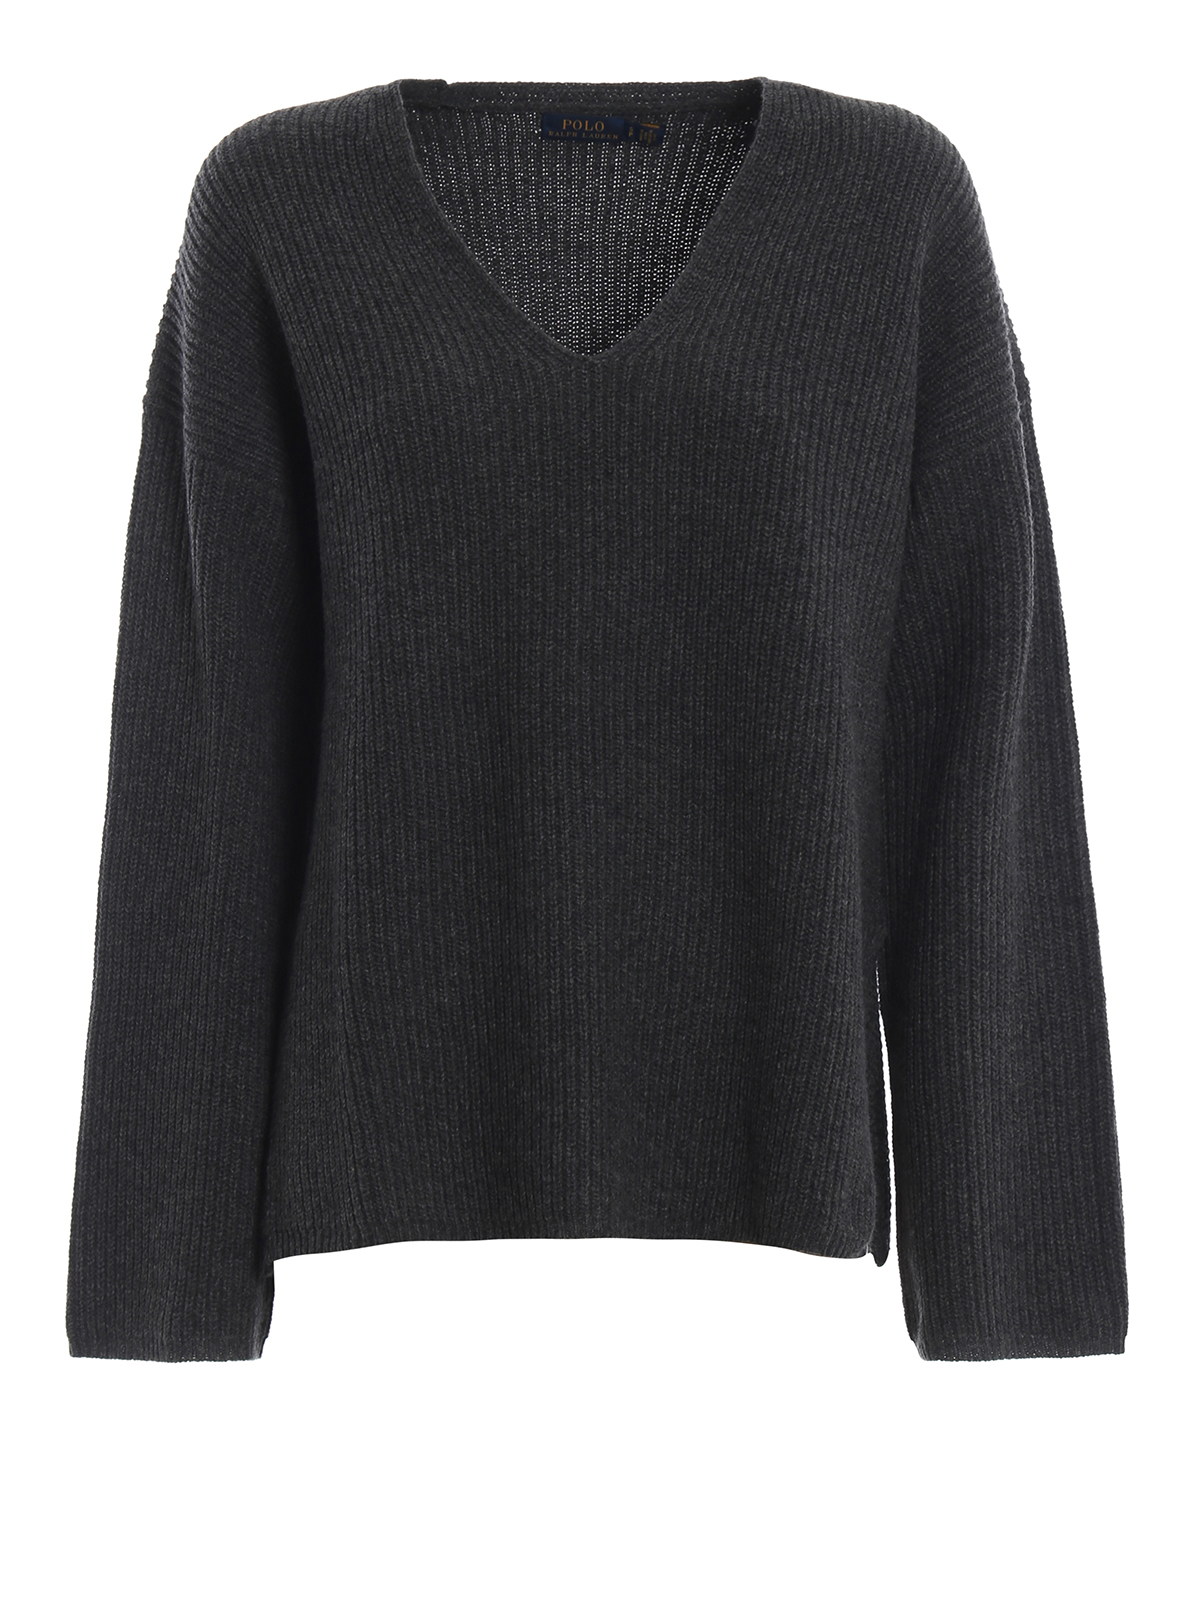 POLO RALPH LAUREN  v necks - Rib knitted merino and cashmere sweater 2f52a309abf2